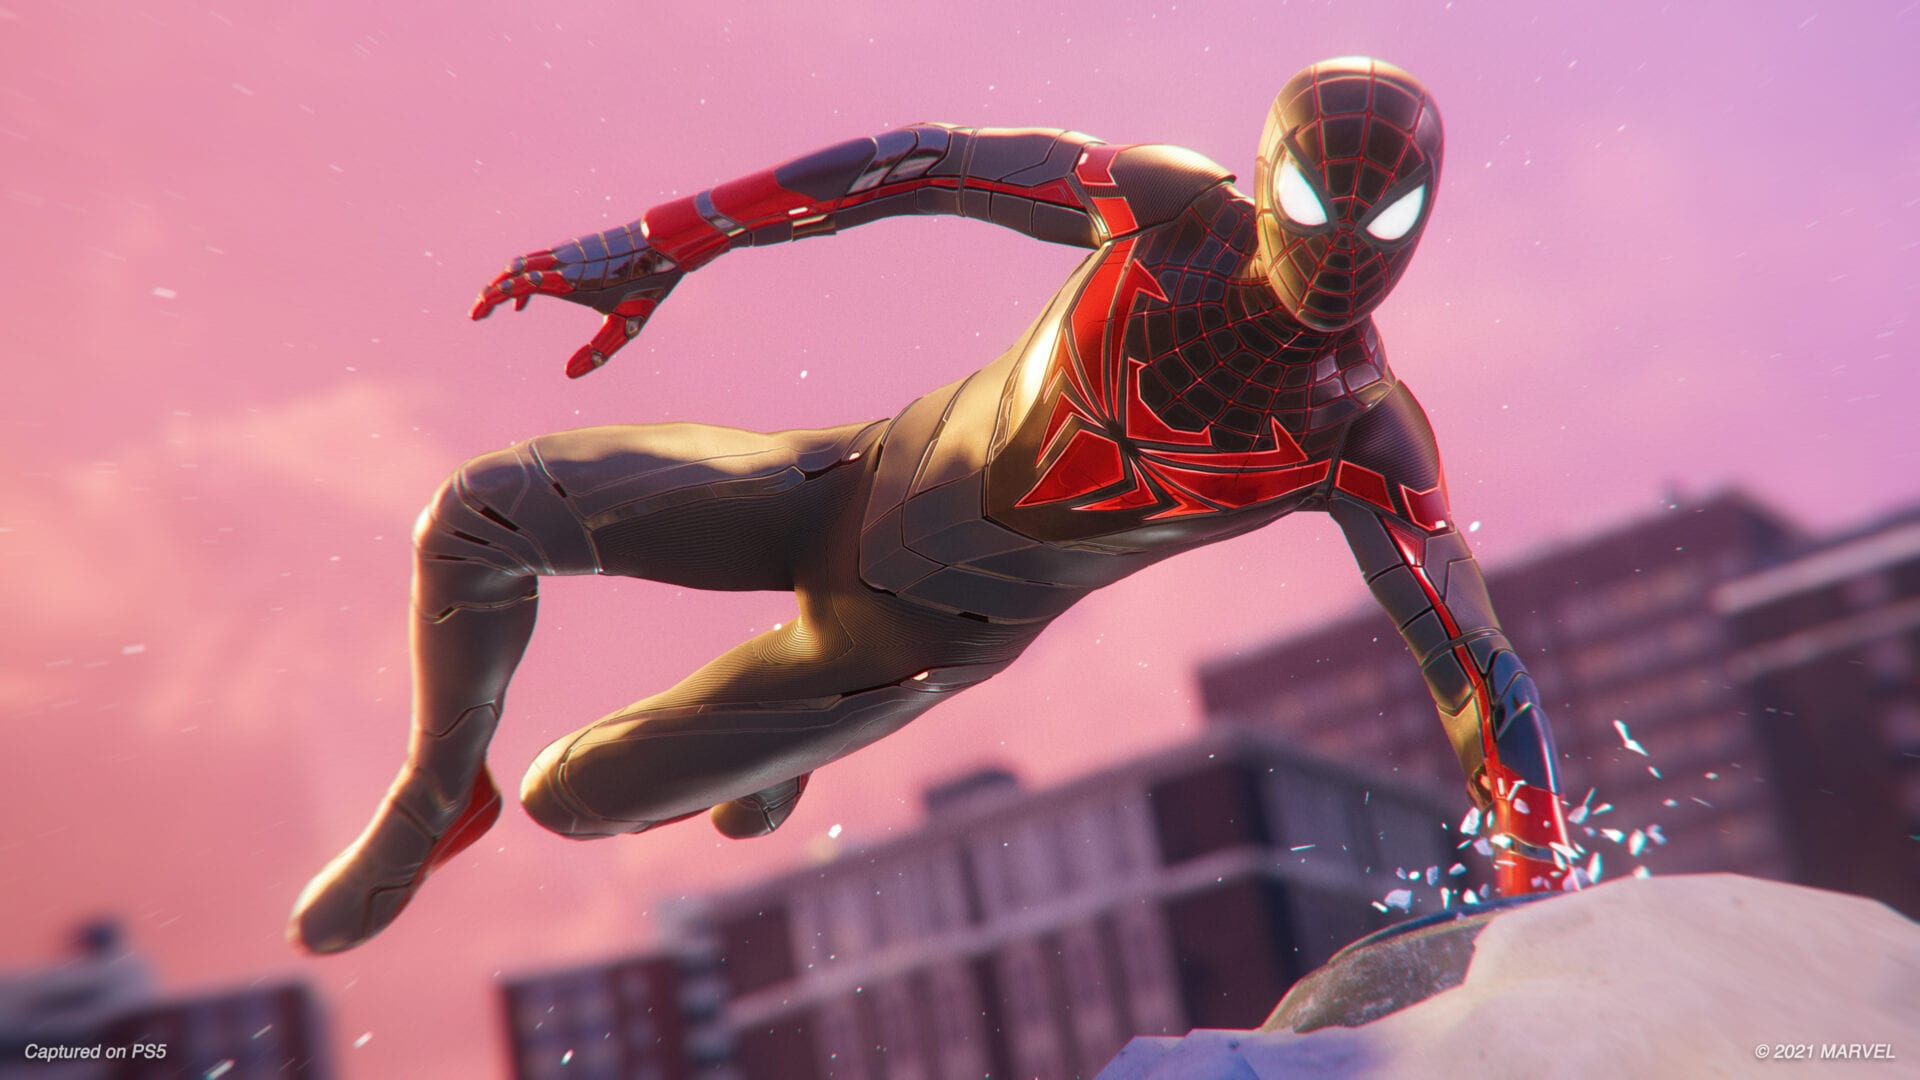 The Advanced Tech Suit in action in Spider-Man Mile Morales